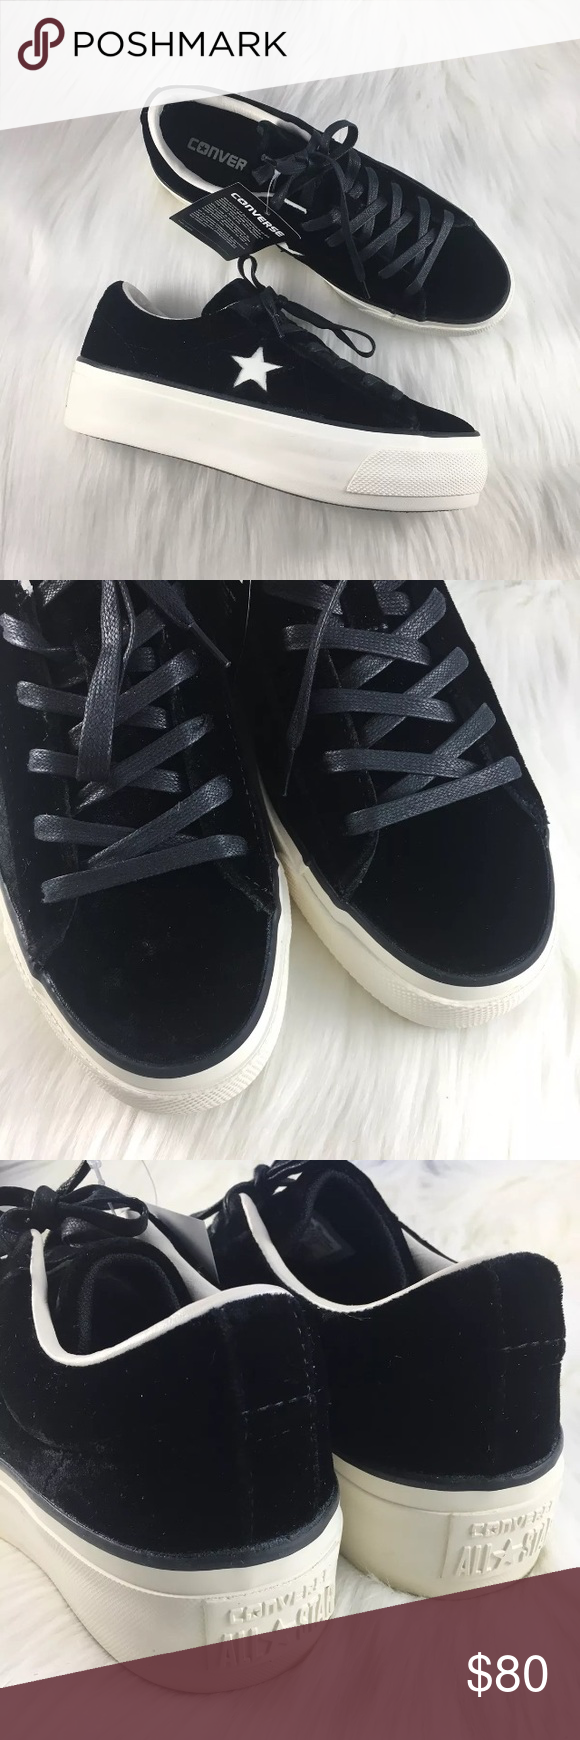 a449be843a0 Women s Converse One Star Velvet Platform OX Women s Converse One Star  Velvet Platform OX Sneakers. Style Color  558950C • Women s size 7 • NEW in  box (no ...